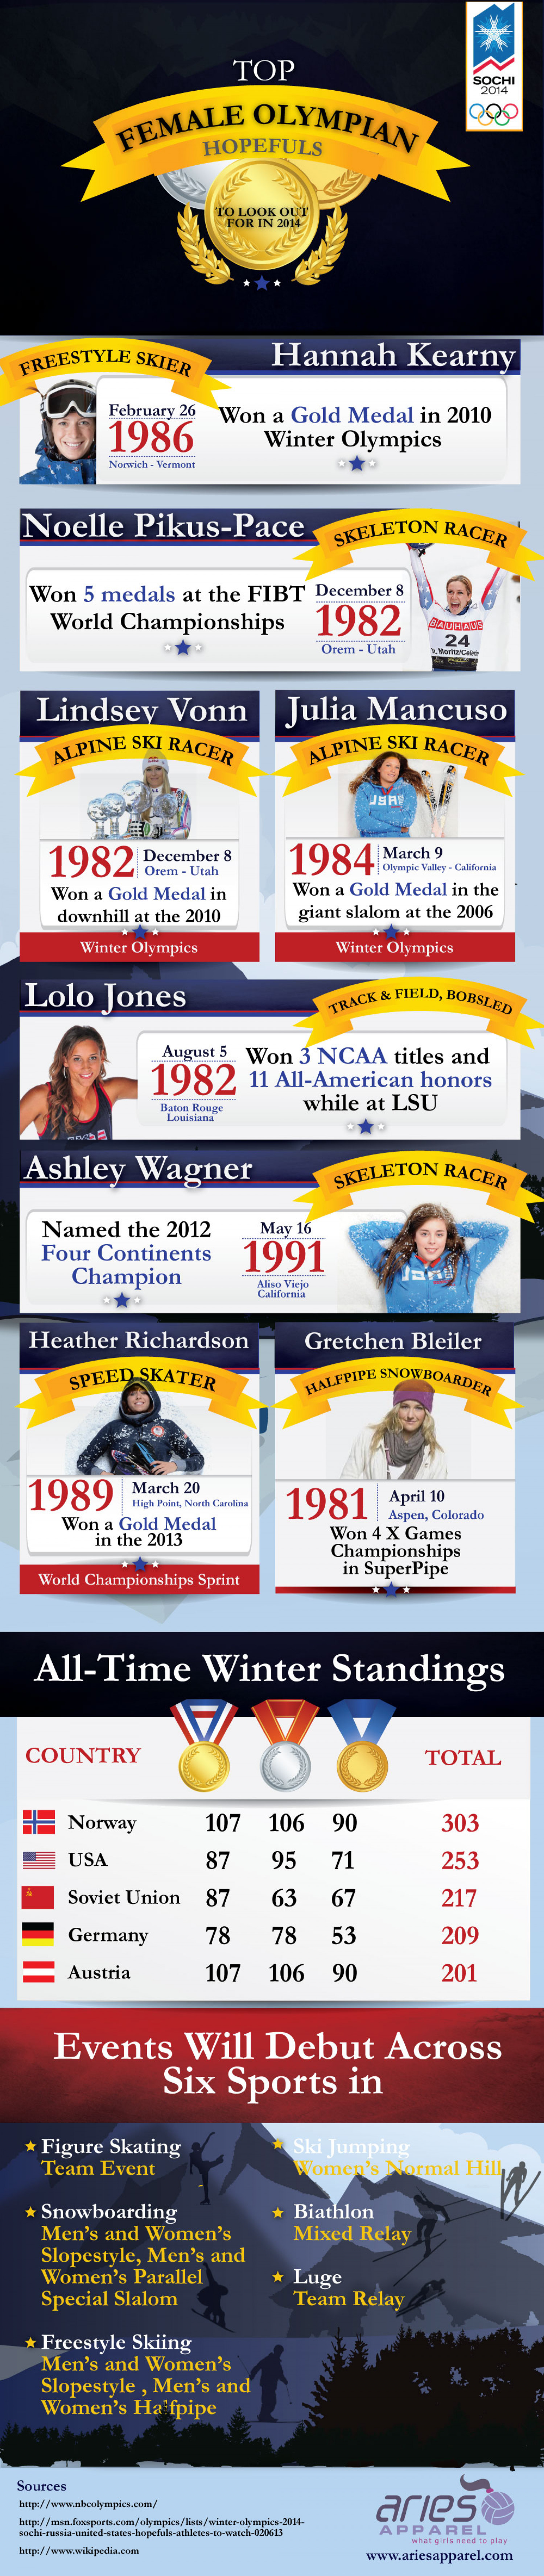 Top Female Olympian Hopefuls Infographic